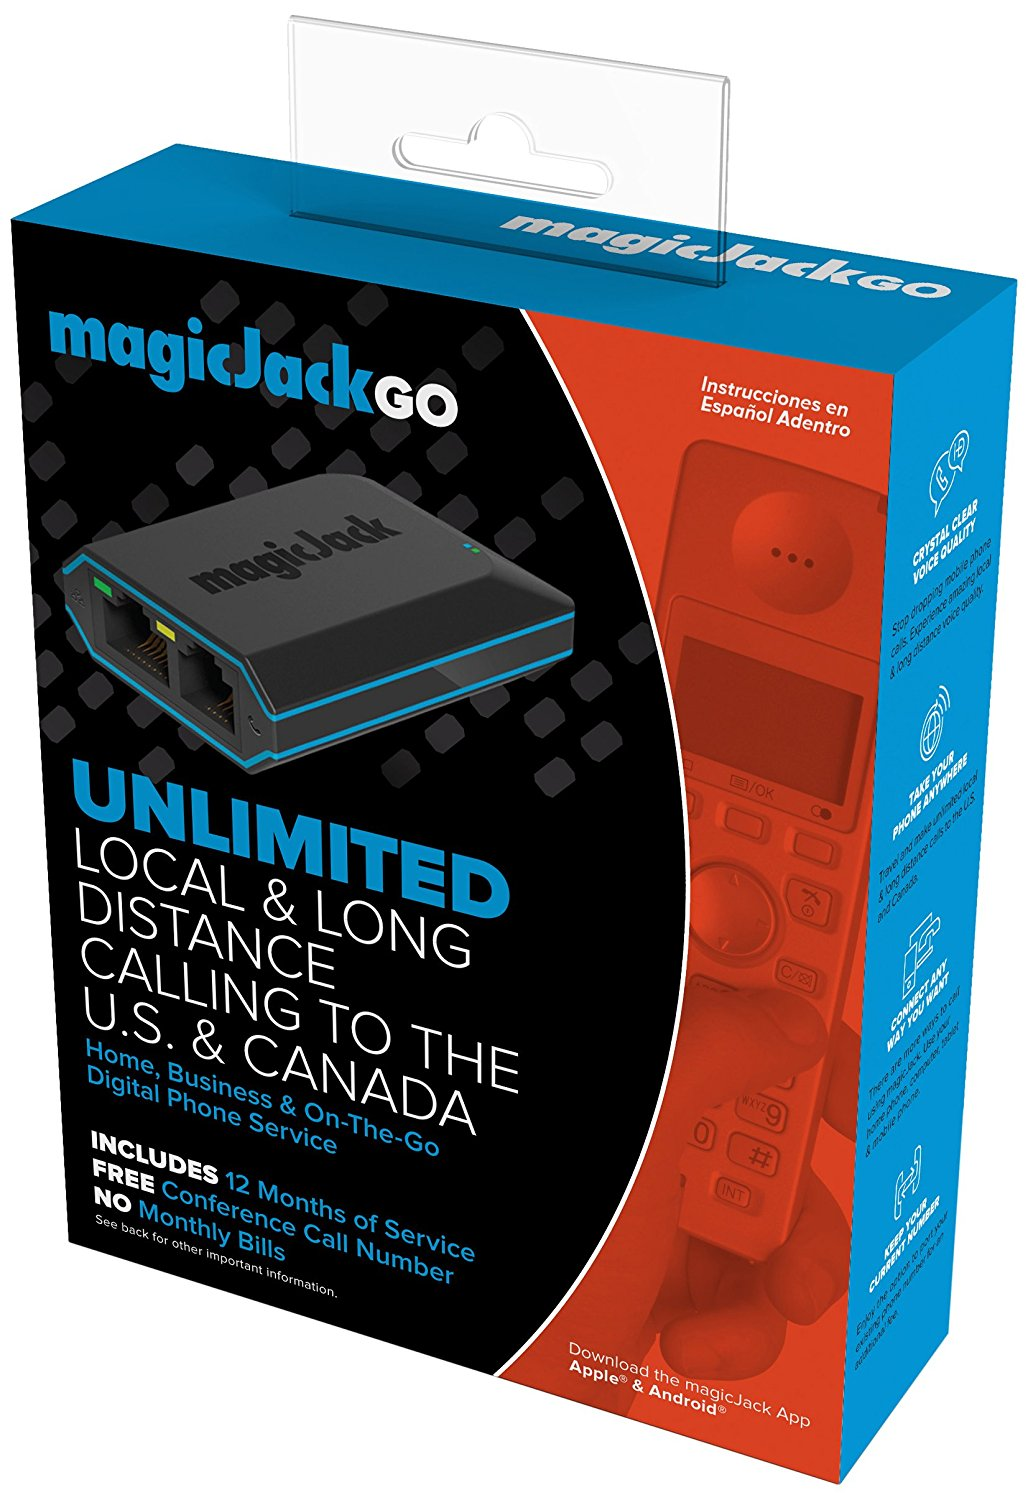 hight resolution of details about magicjack go digital phone service includes 12 months of free service new